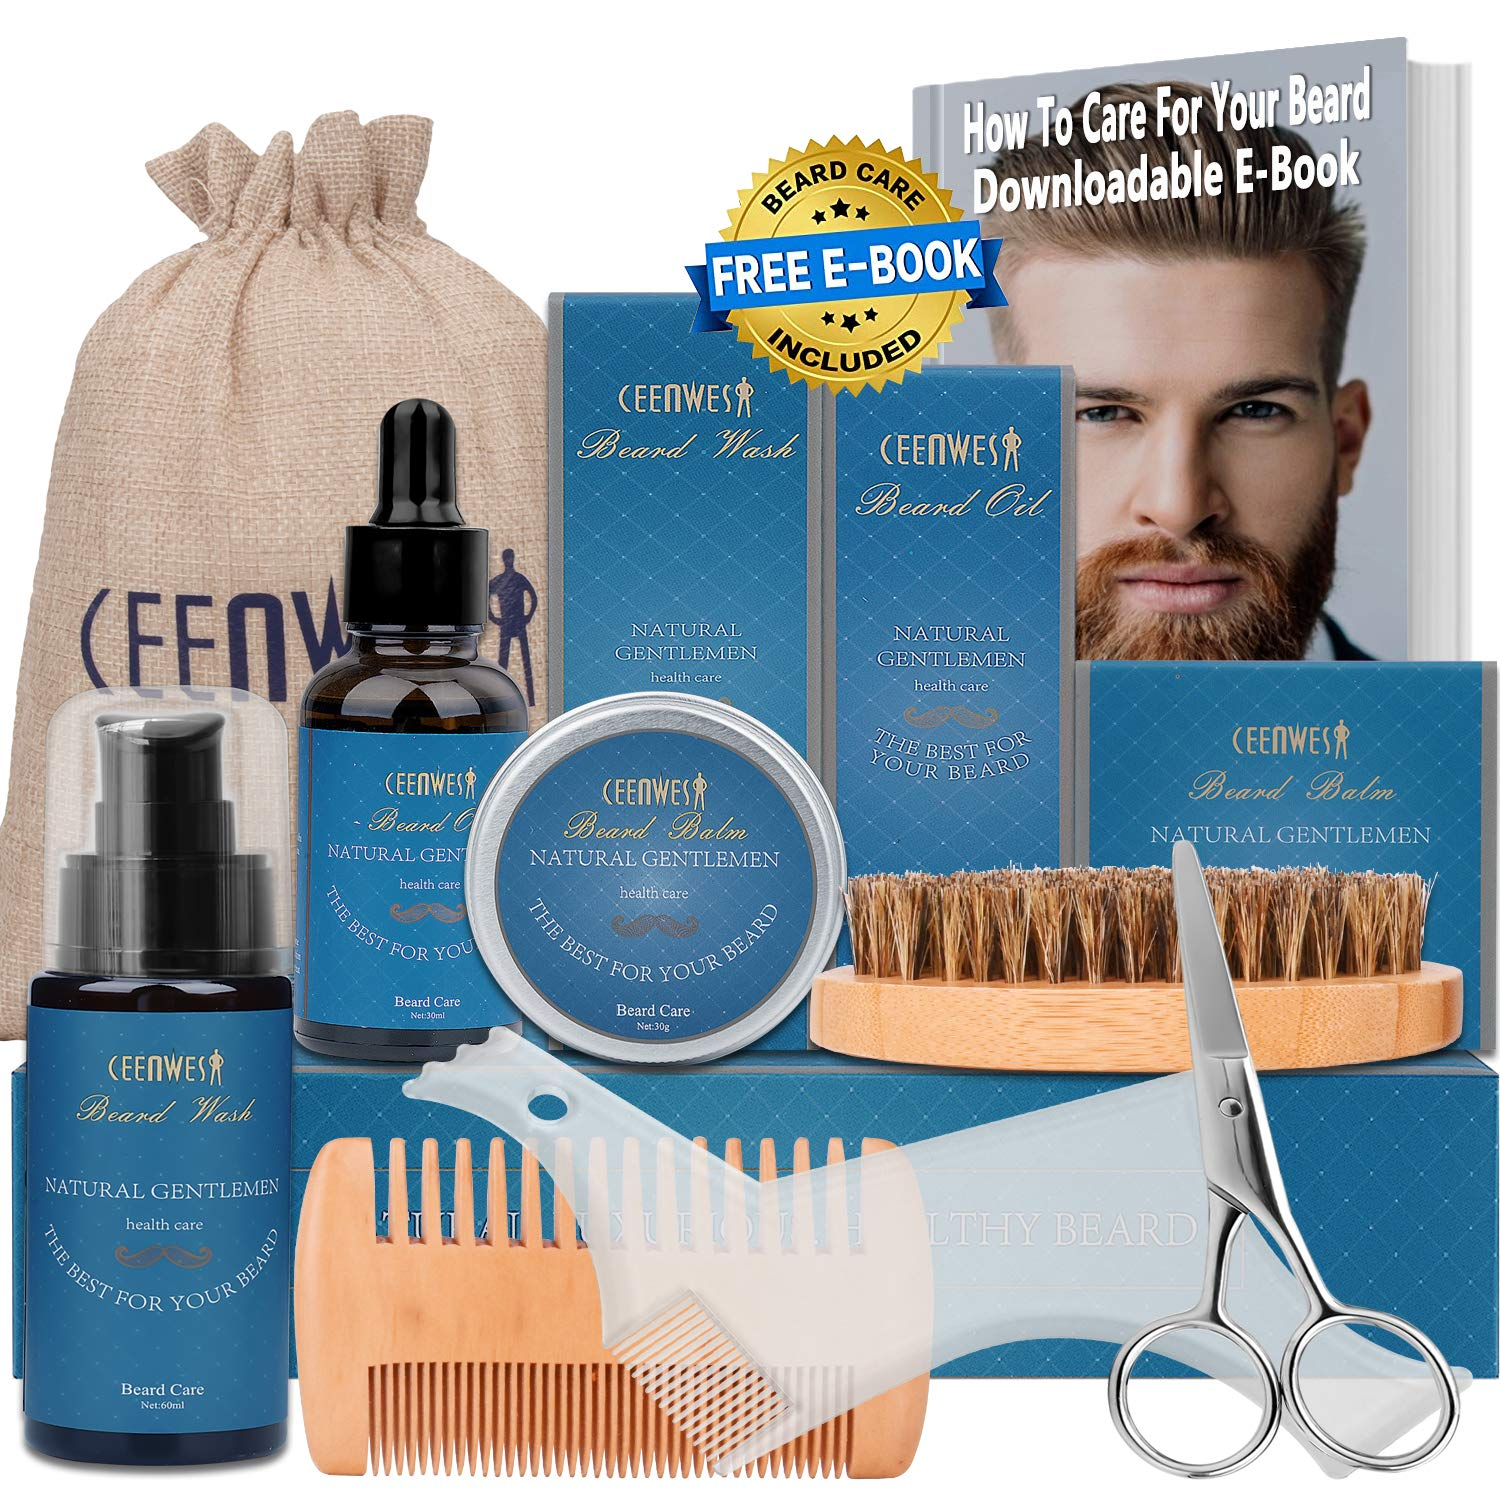 9 in 1 Beard Grooming Kit for Beard Care Unique Gifts for Men, Beard Oil, Beard Brush, Beard Comb, Beard Balm, Beard Shampoo, Beard & Mustache Scissors Beard Growth & Trimming Kit